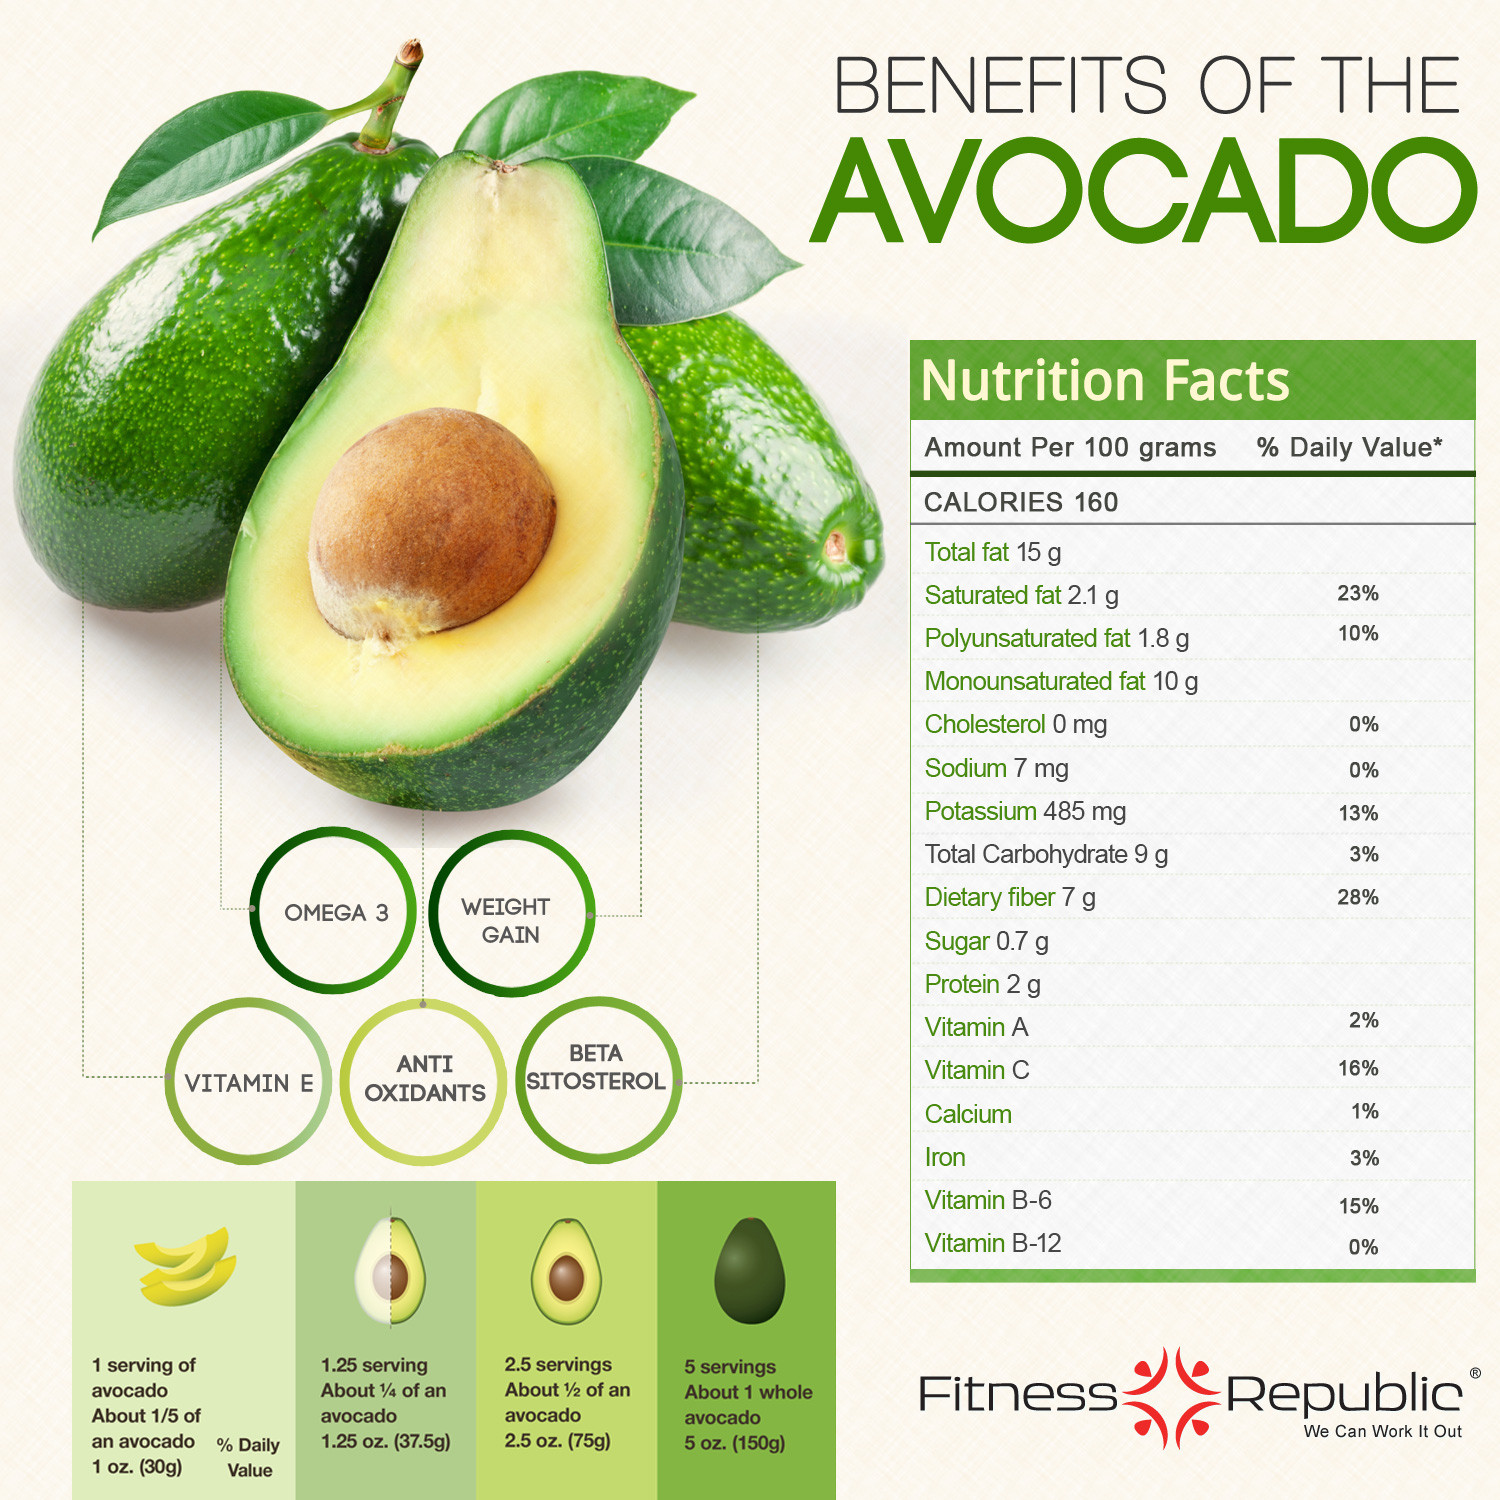 Benefits of the Avocado Infographic